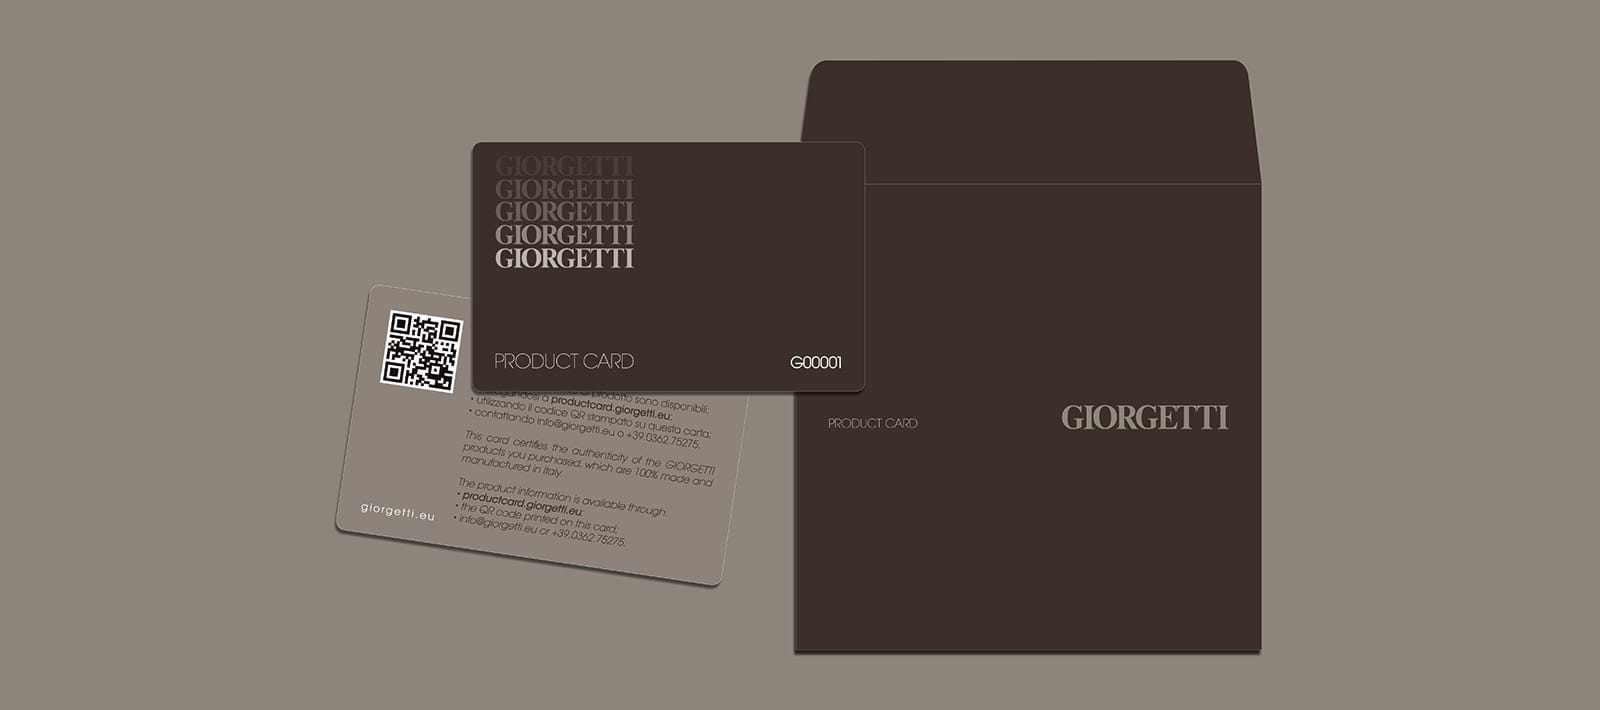 Product Card - Giorgetti 2